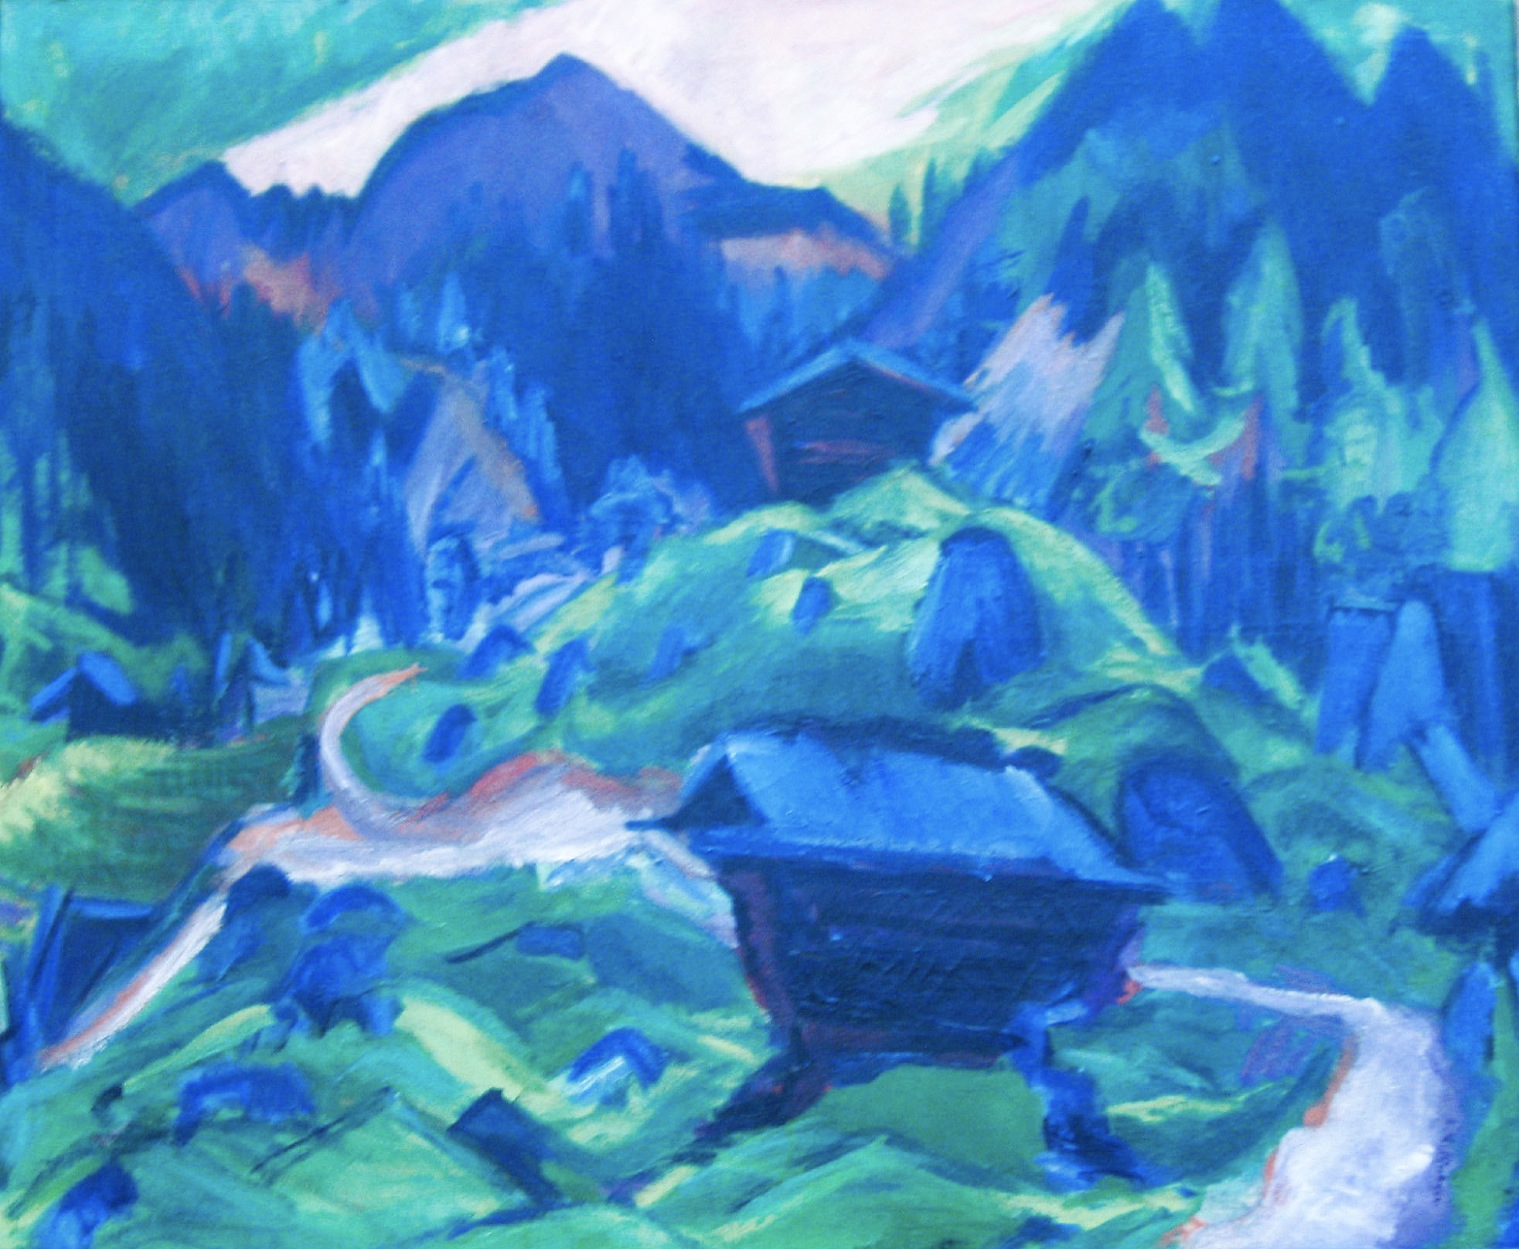 wpid-ernst-ludwig-kirchner-kummeralp-mountain-and-two-sheds-1920-2011-10-14-12-08.jpg